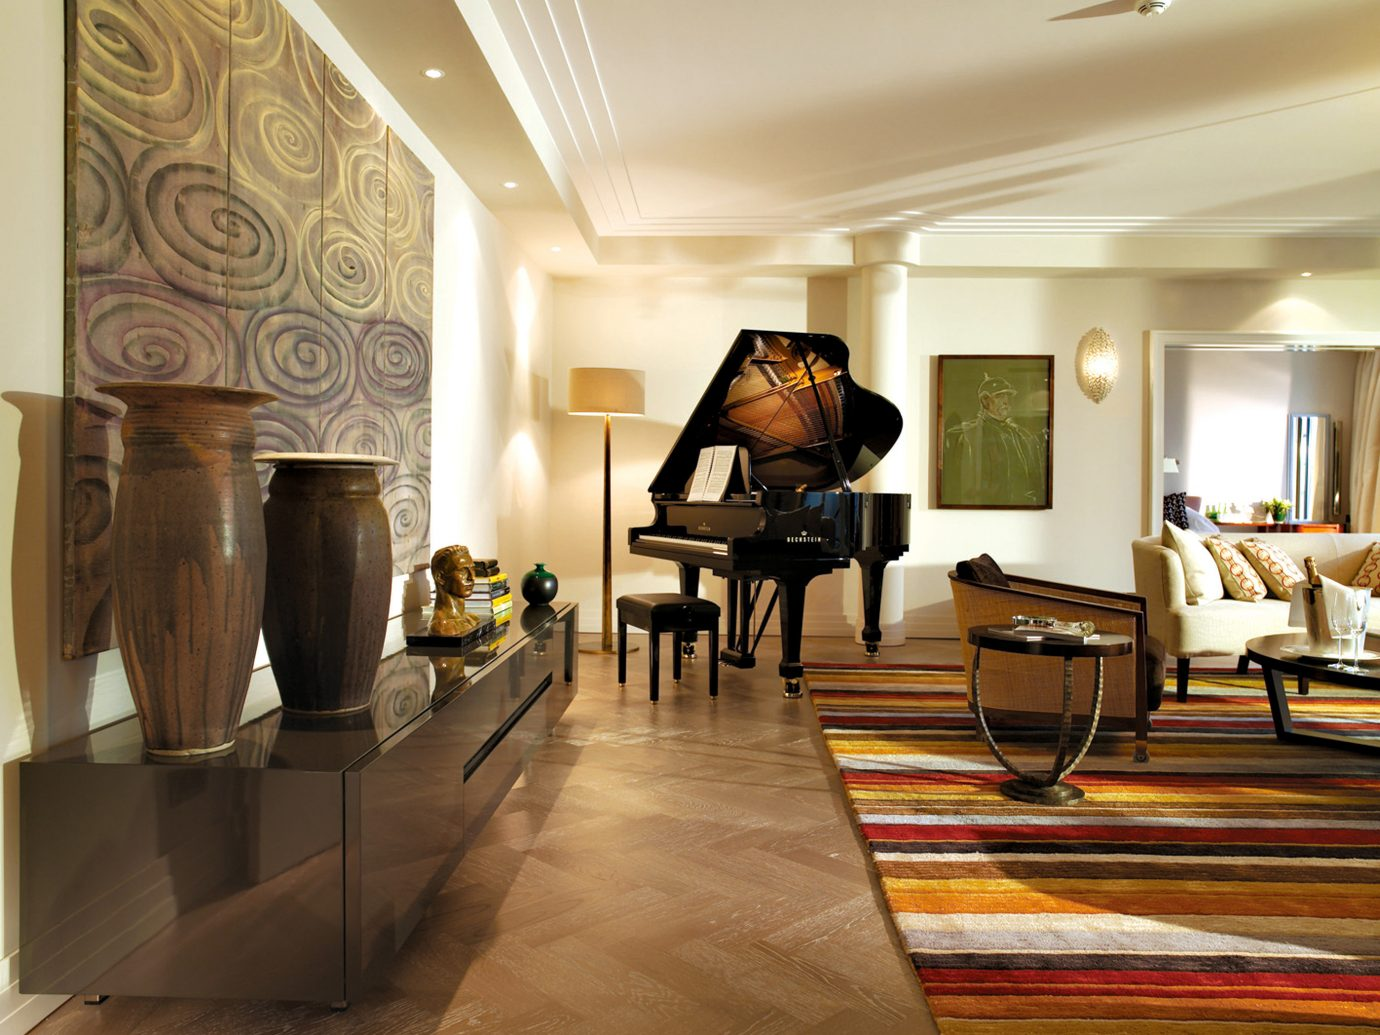 europe Germany Hotels Living Lounge Luxury Modern Munich indoor floor room ceiling wall Lobby property interior design home living room flooring estate Design furniture Boutique hall tourist attraction area decorated